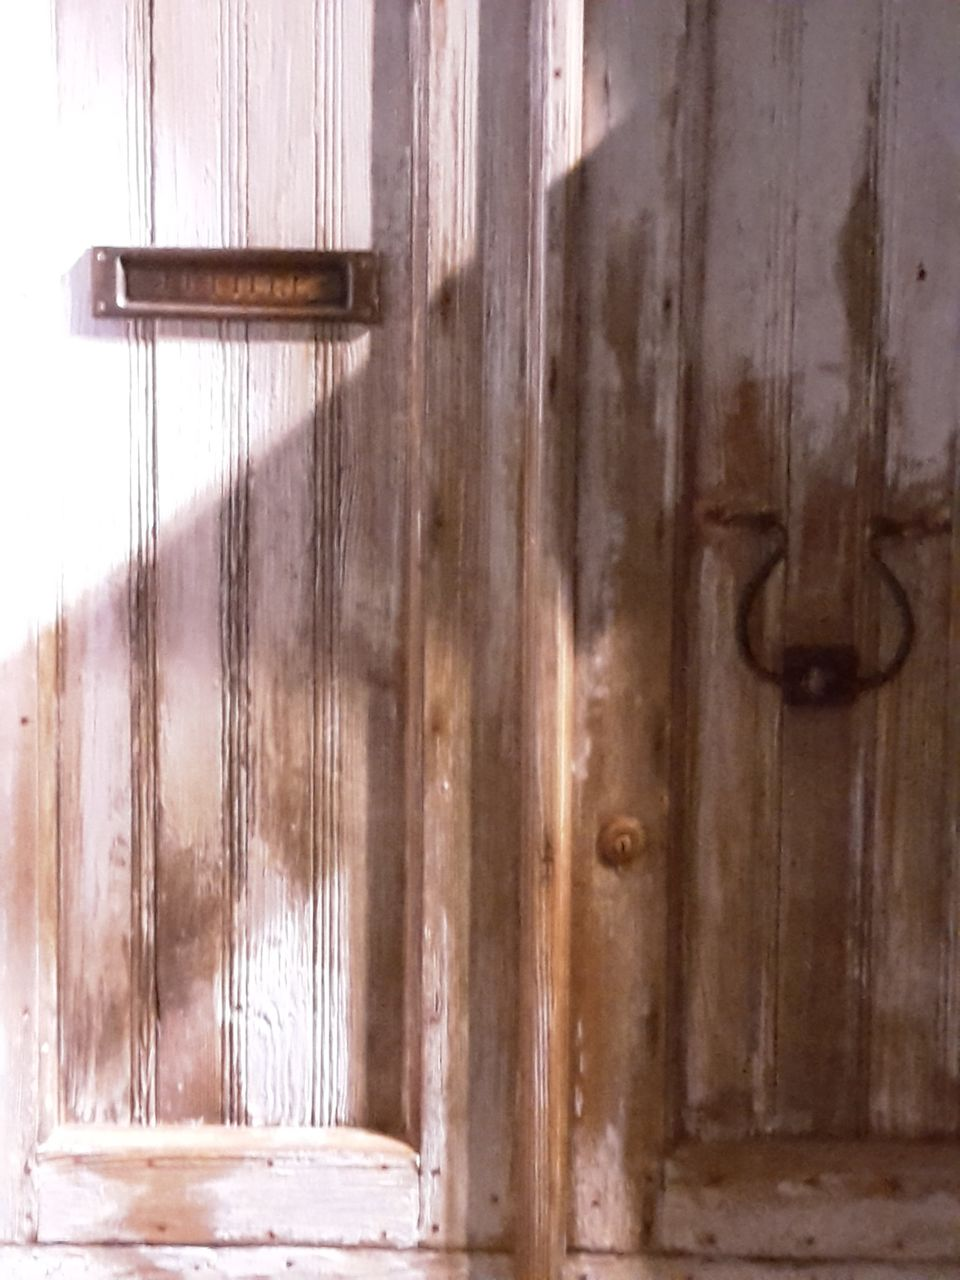 door, wood - material, no people, indoors, architecture, day, built structure, building exterior, close-up